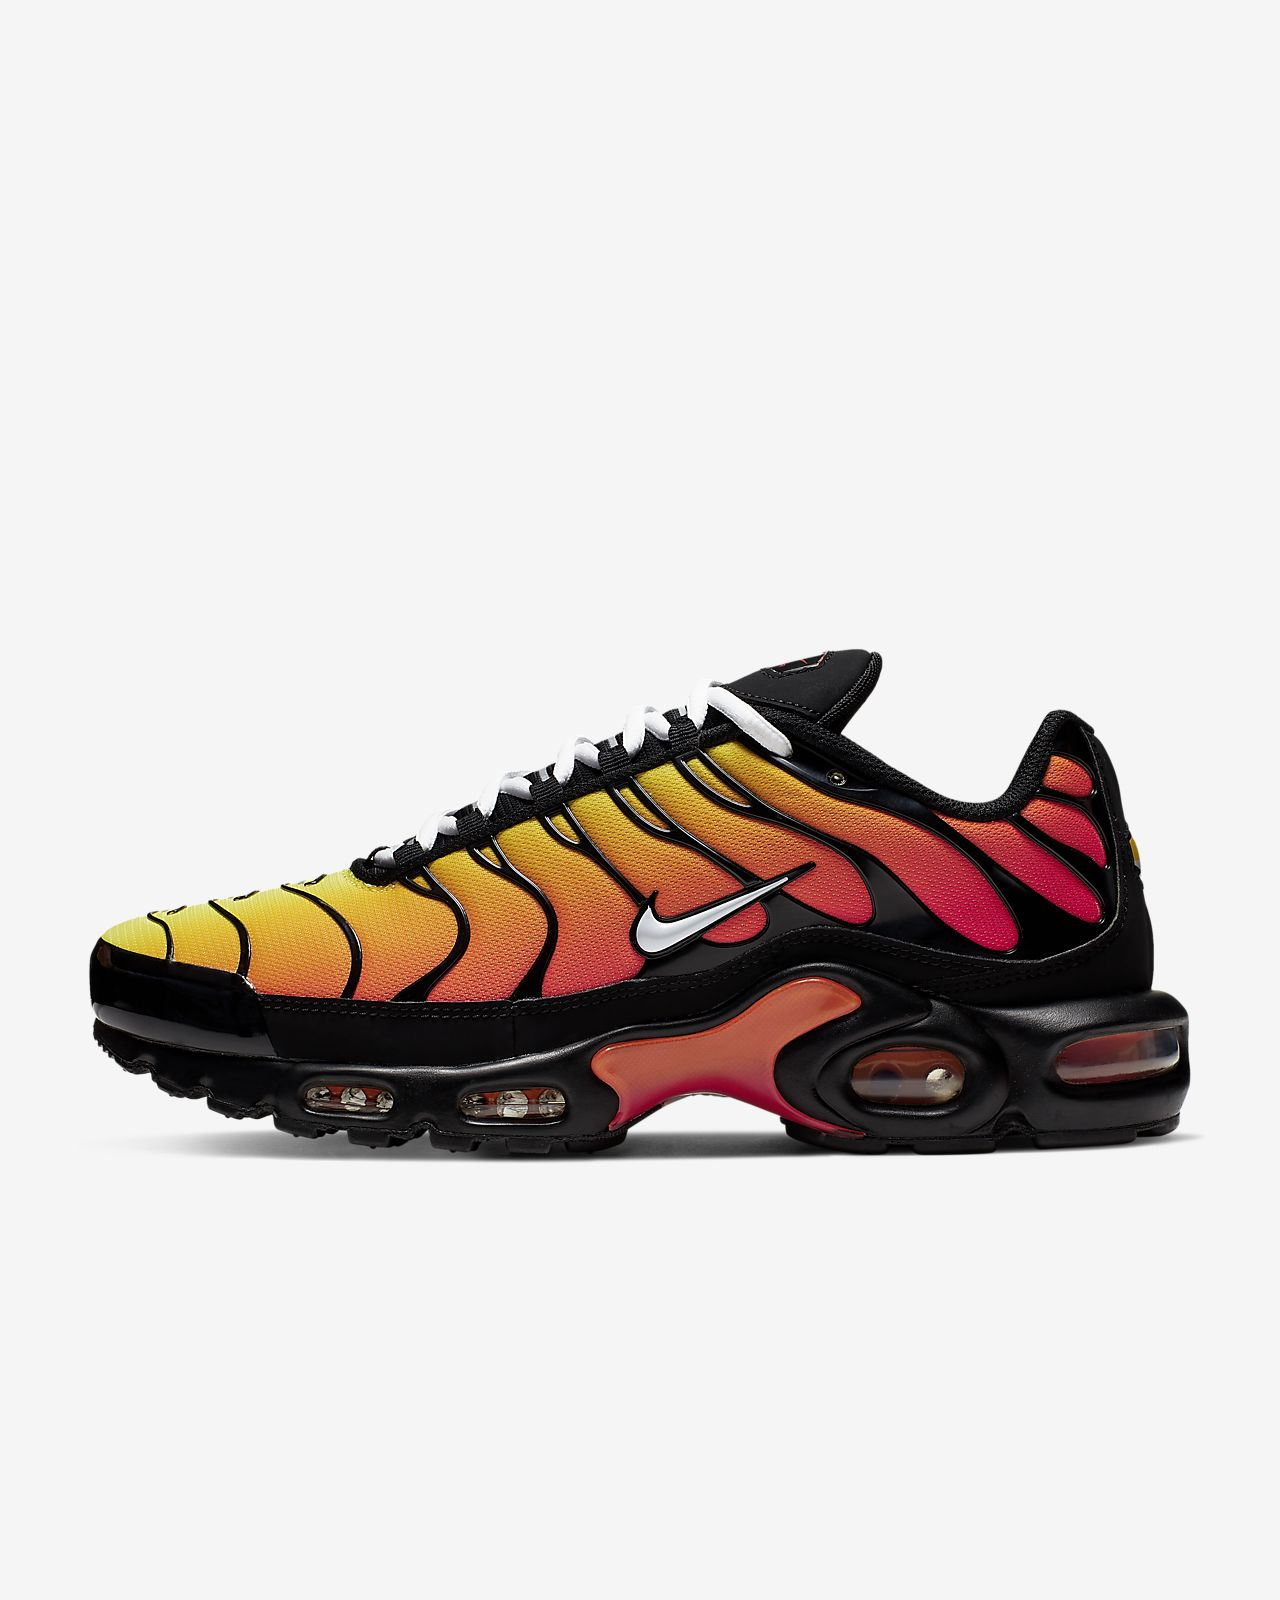 revendeur 749ba 82b1d Nike Air Max Plus Men's Shoe